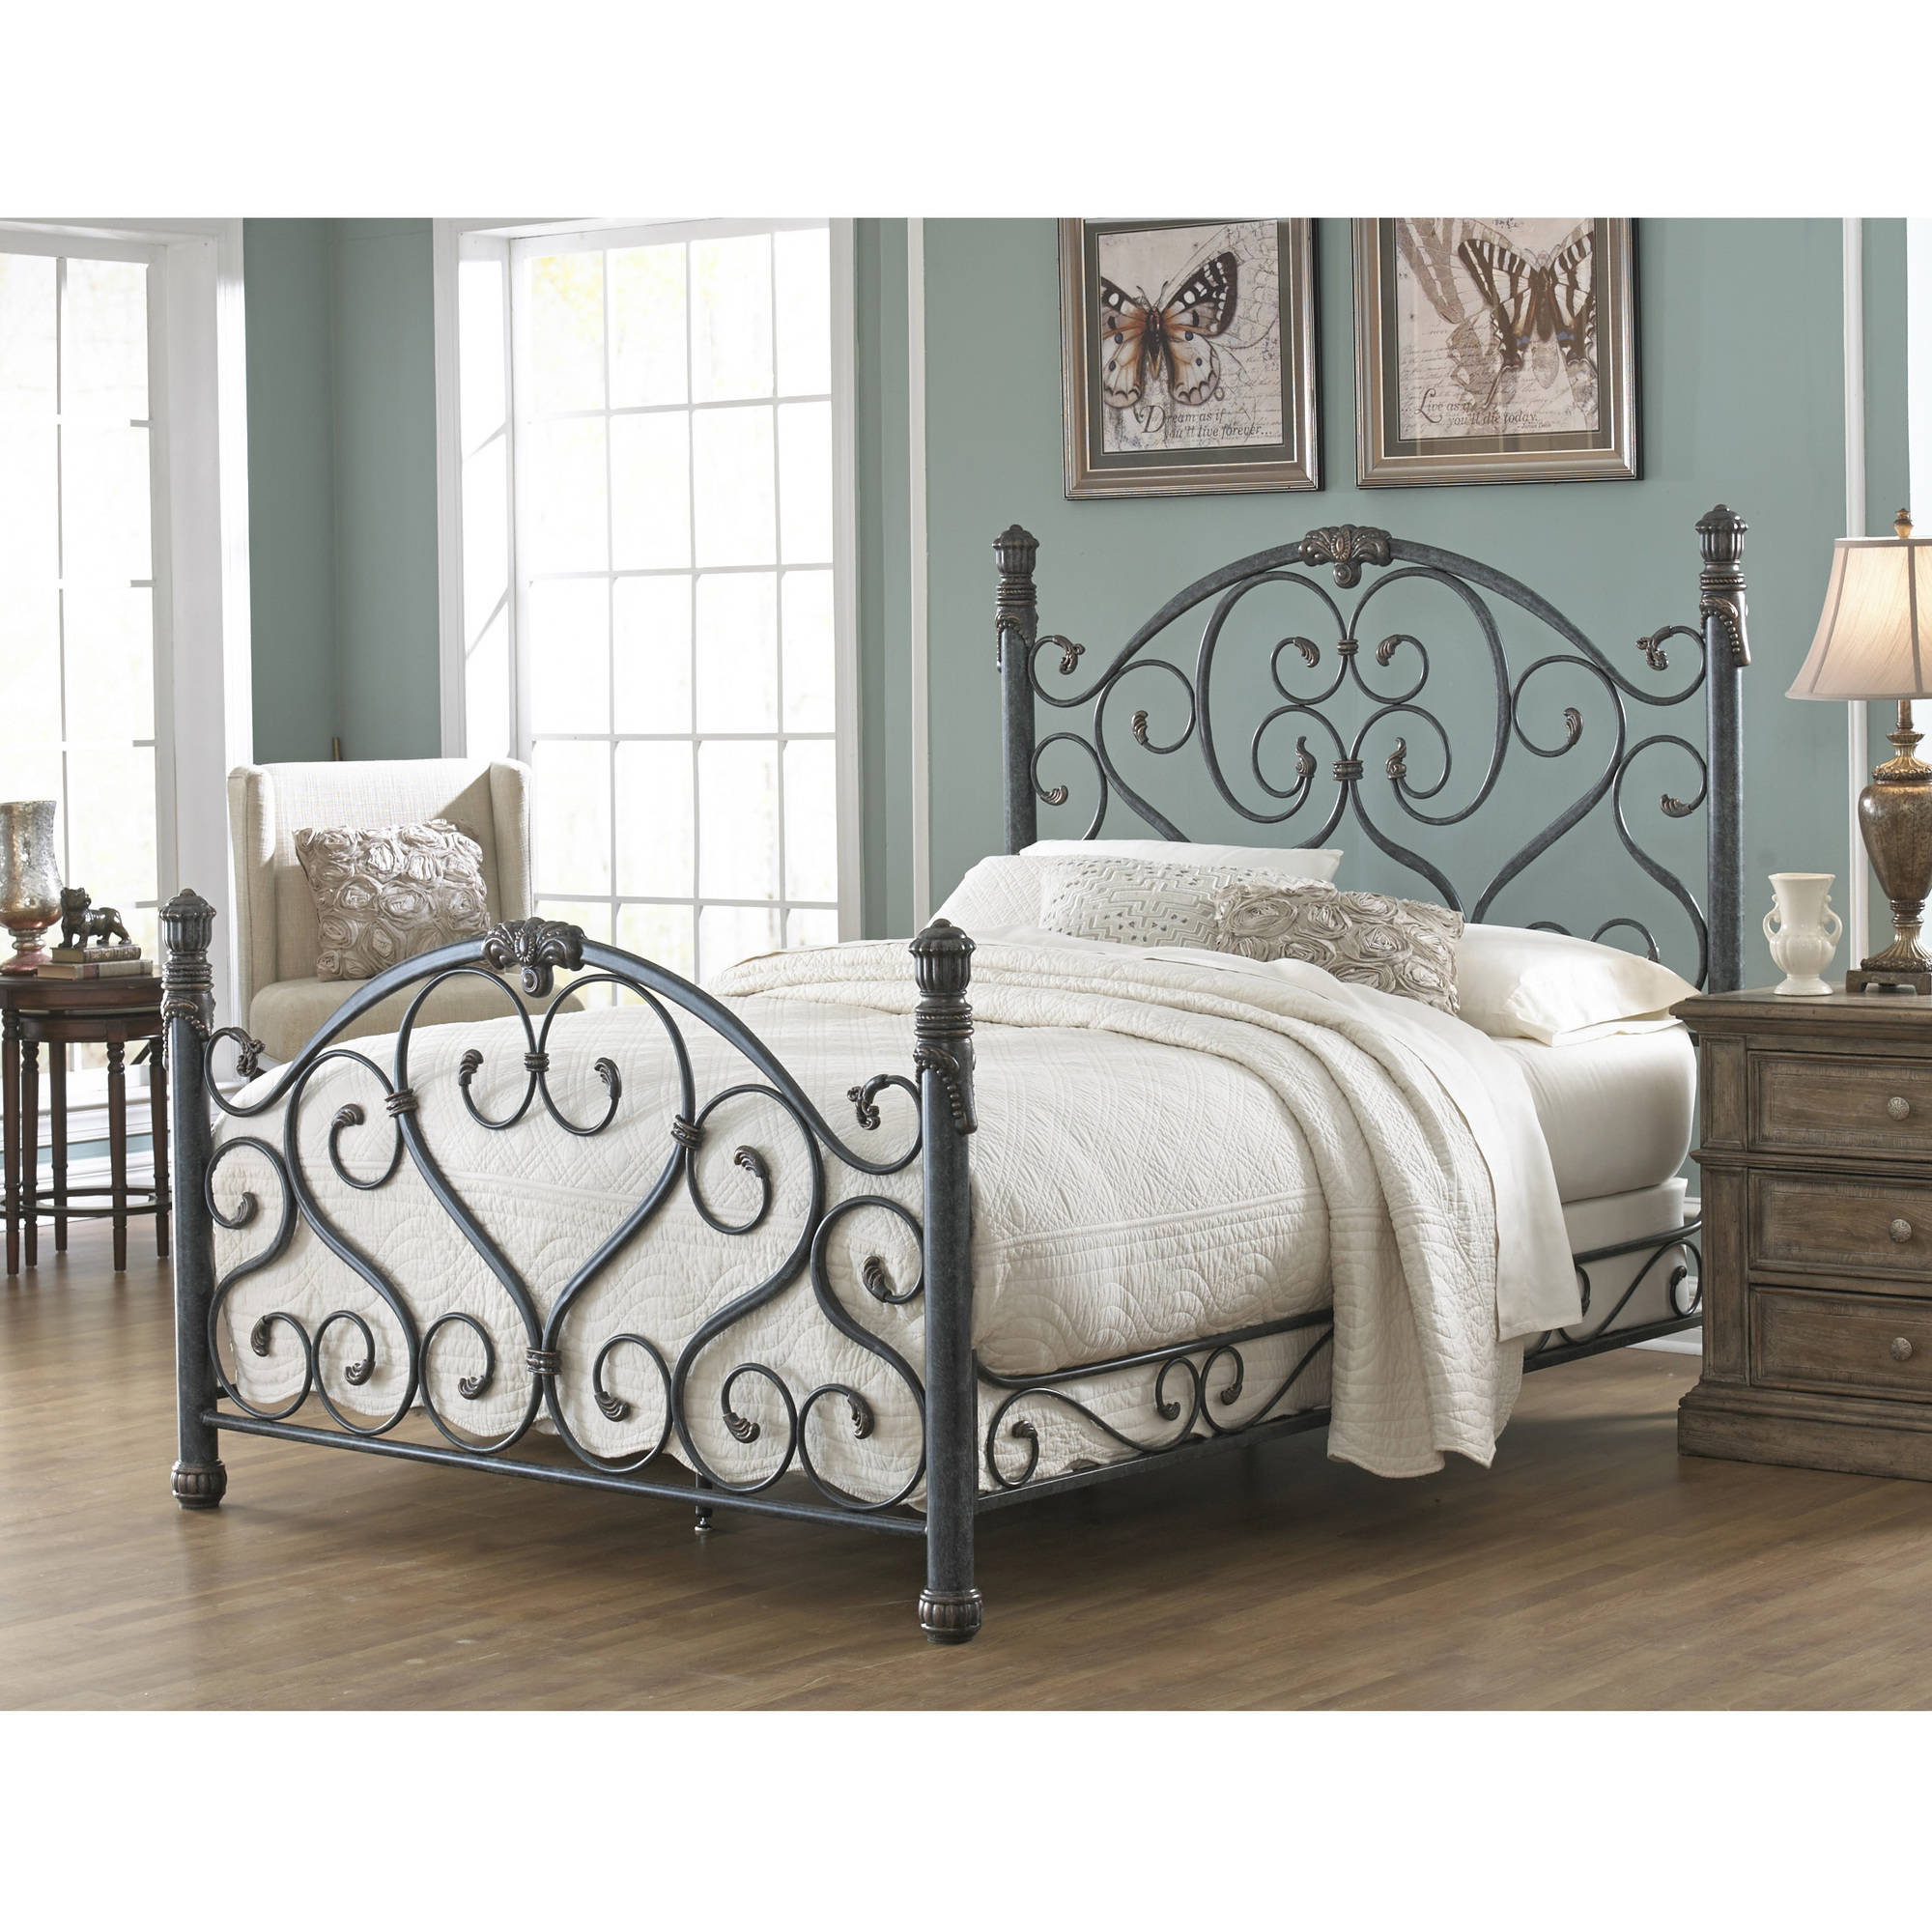 Fashion Bed Group by Leggett & Platt Duchess Cerulean Marble Bed, Multiple Sizes